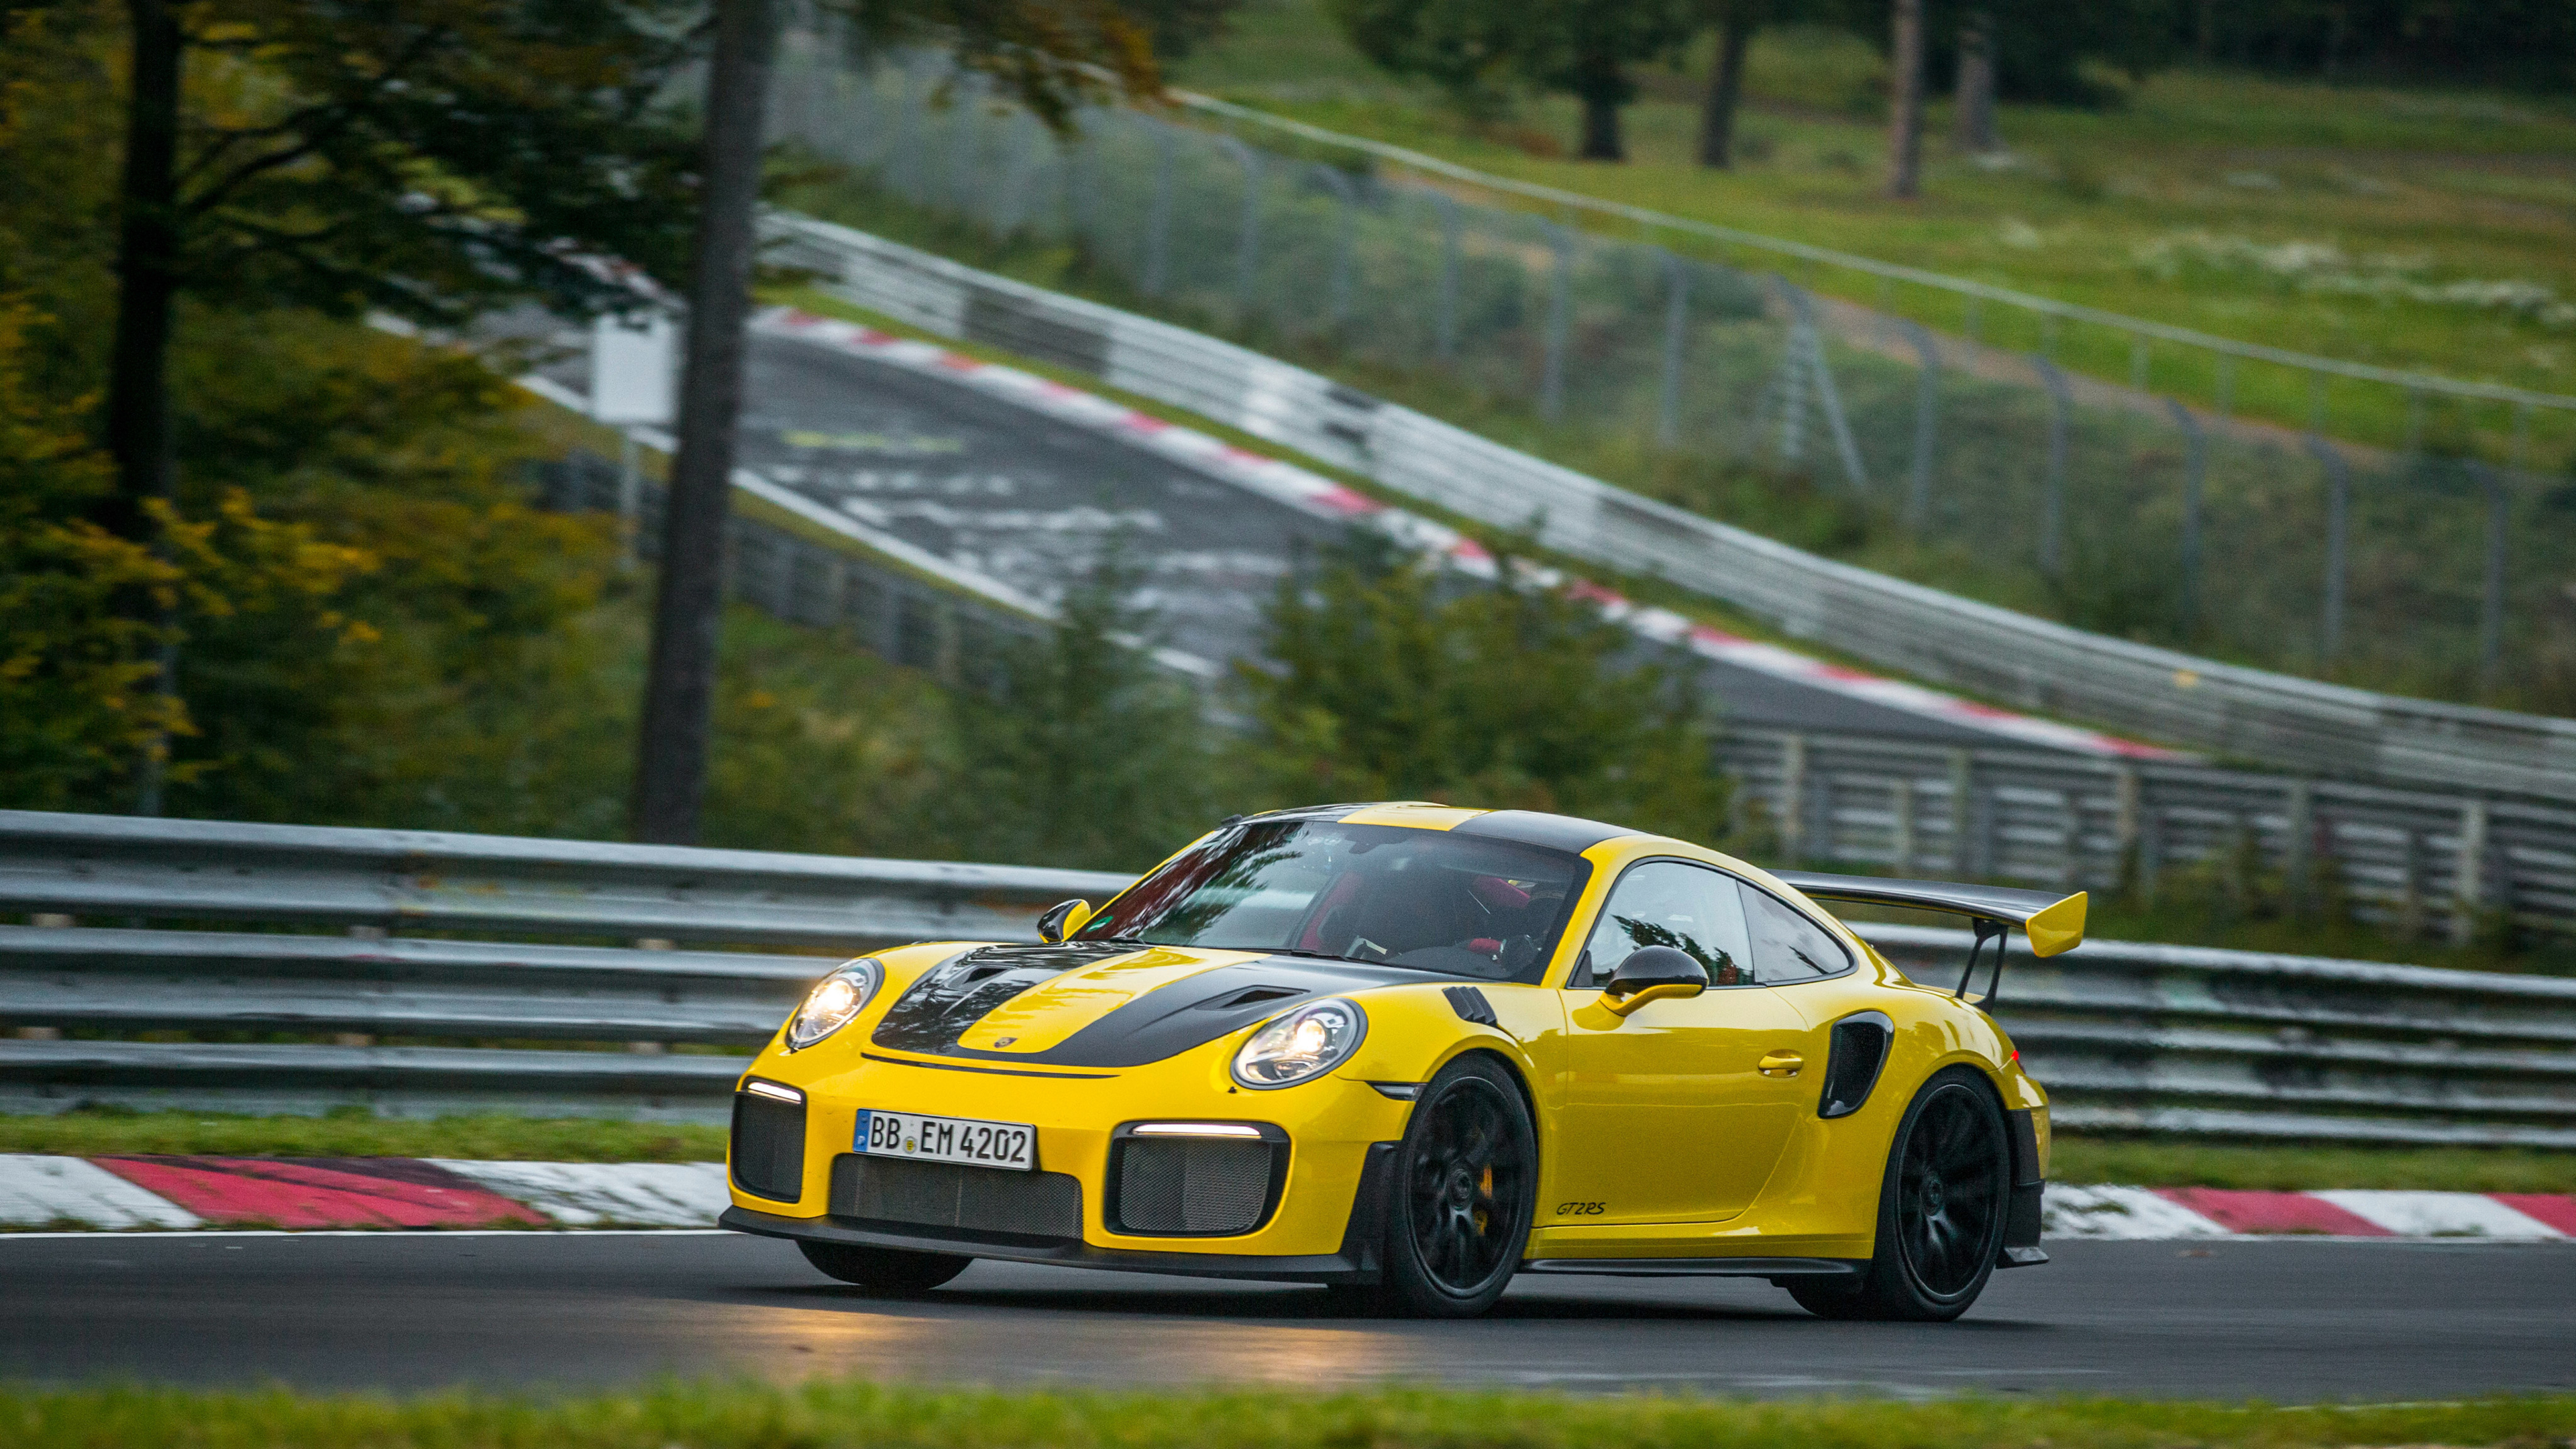 porsche-911-gt2-rs-991-2017_59440_3840x2160 Cozy Porsche 911 Gt2 Rs Wallpaper Cars Trend